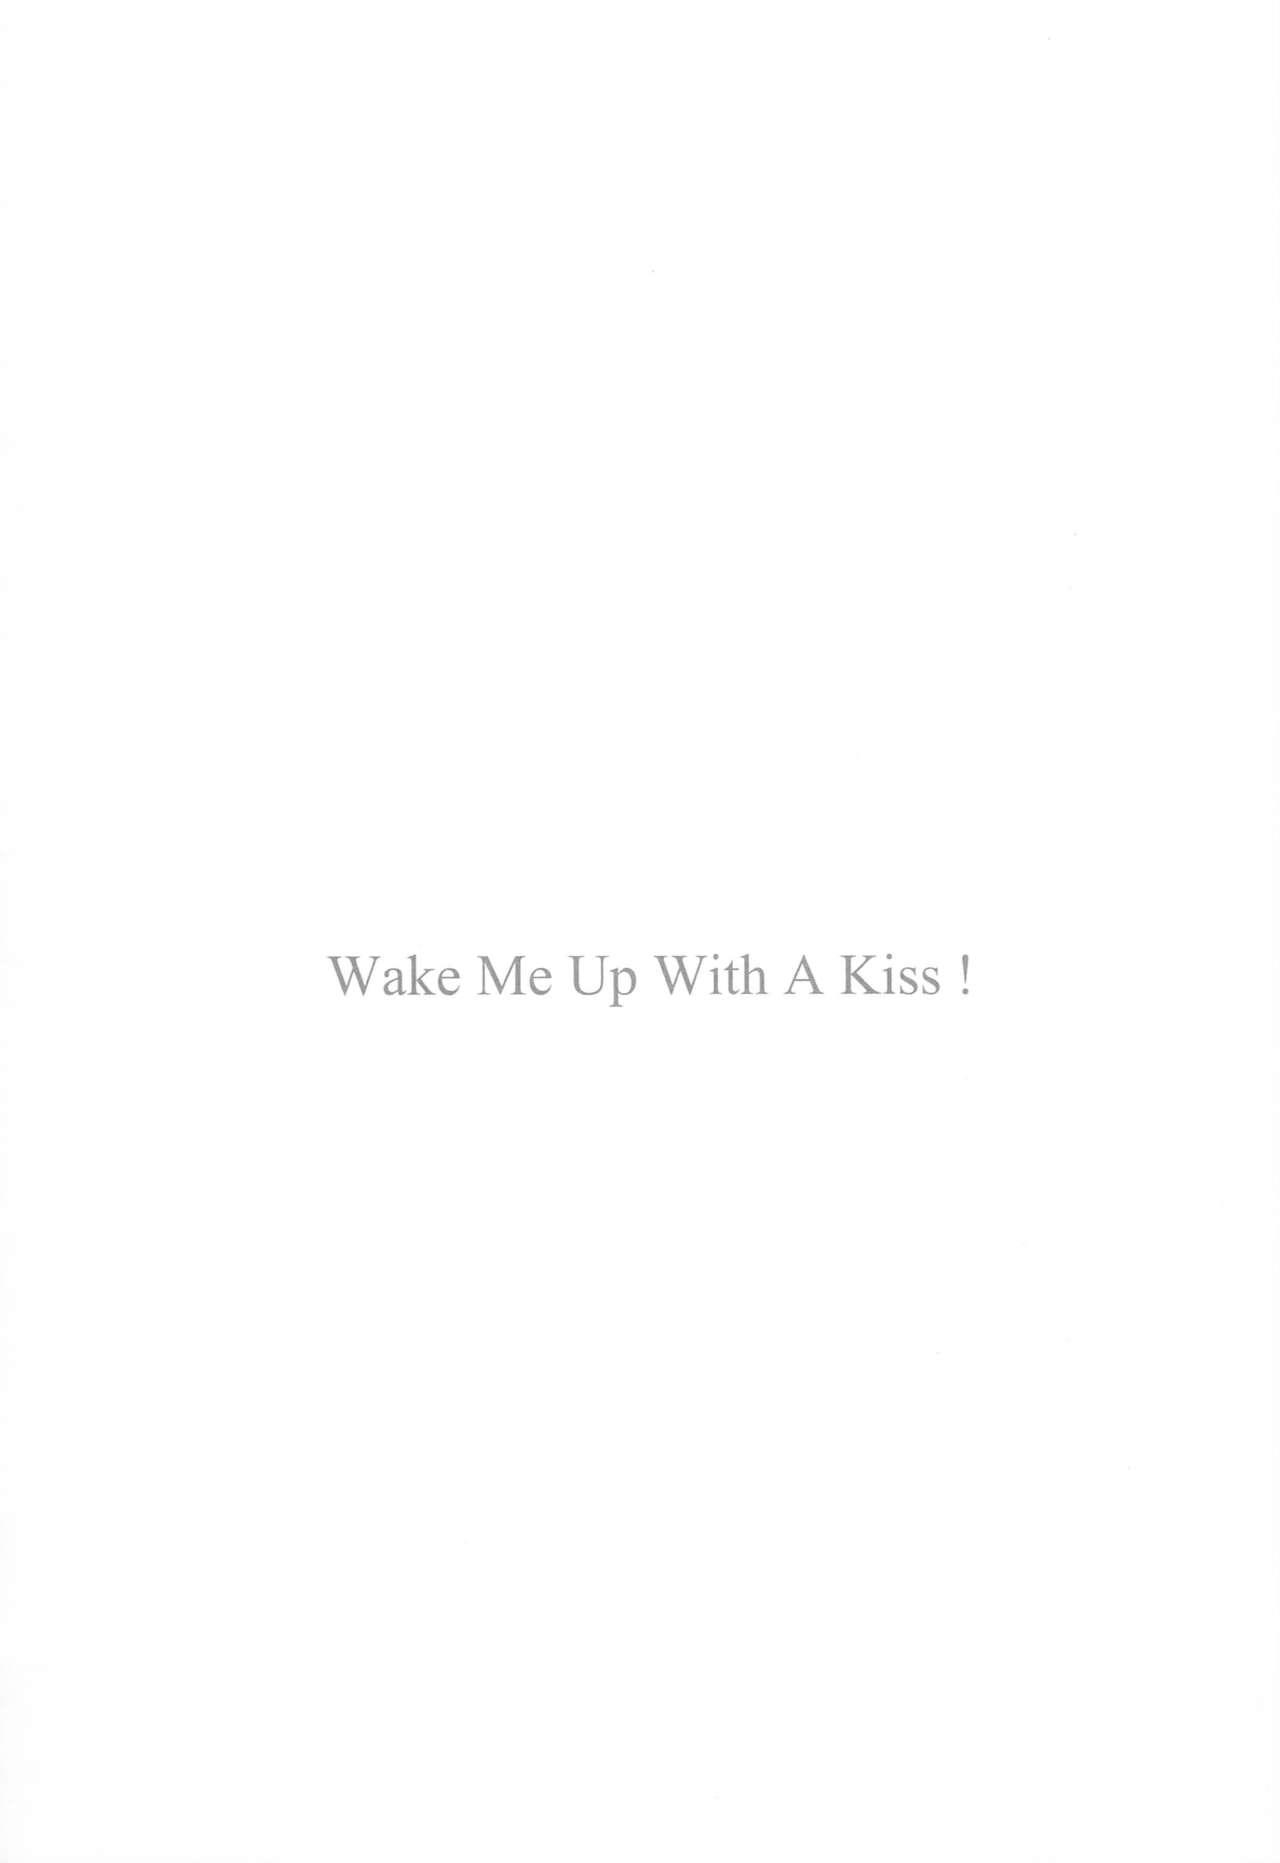 WAKE ME UP WITH A KISS 21